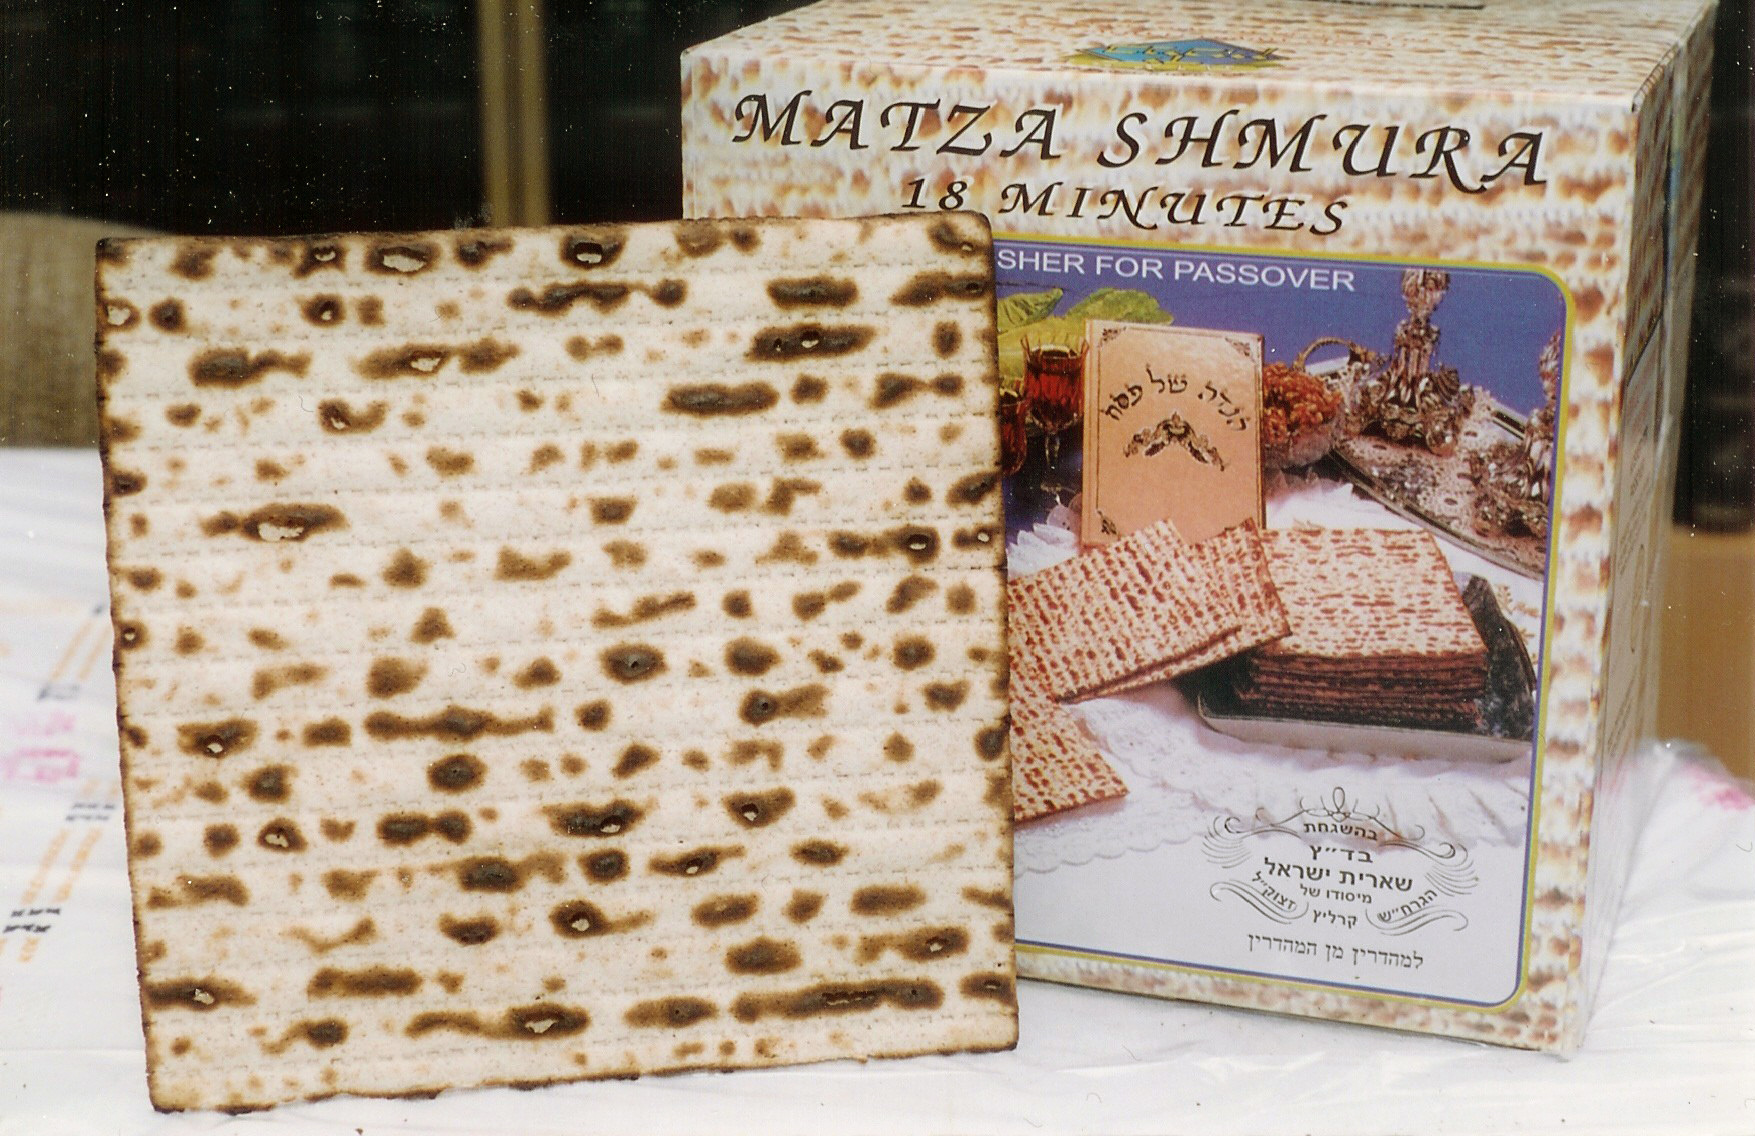 https://i0.wp.com/upload.wikimedia.org/wikipedia/commons/9/9a/Machine-made_Shmura_Matzo.jpg